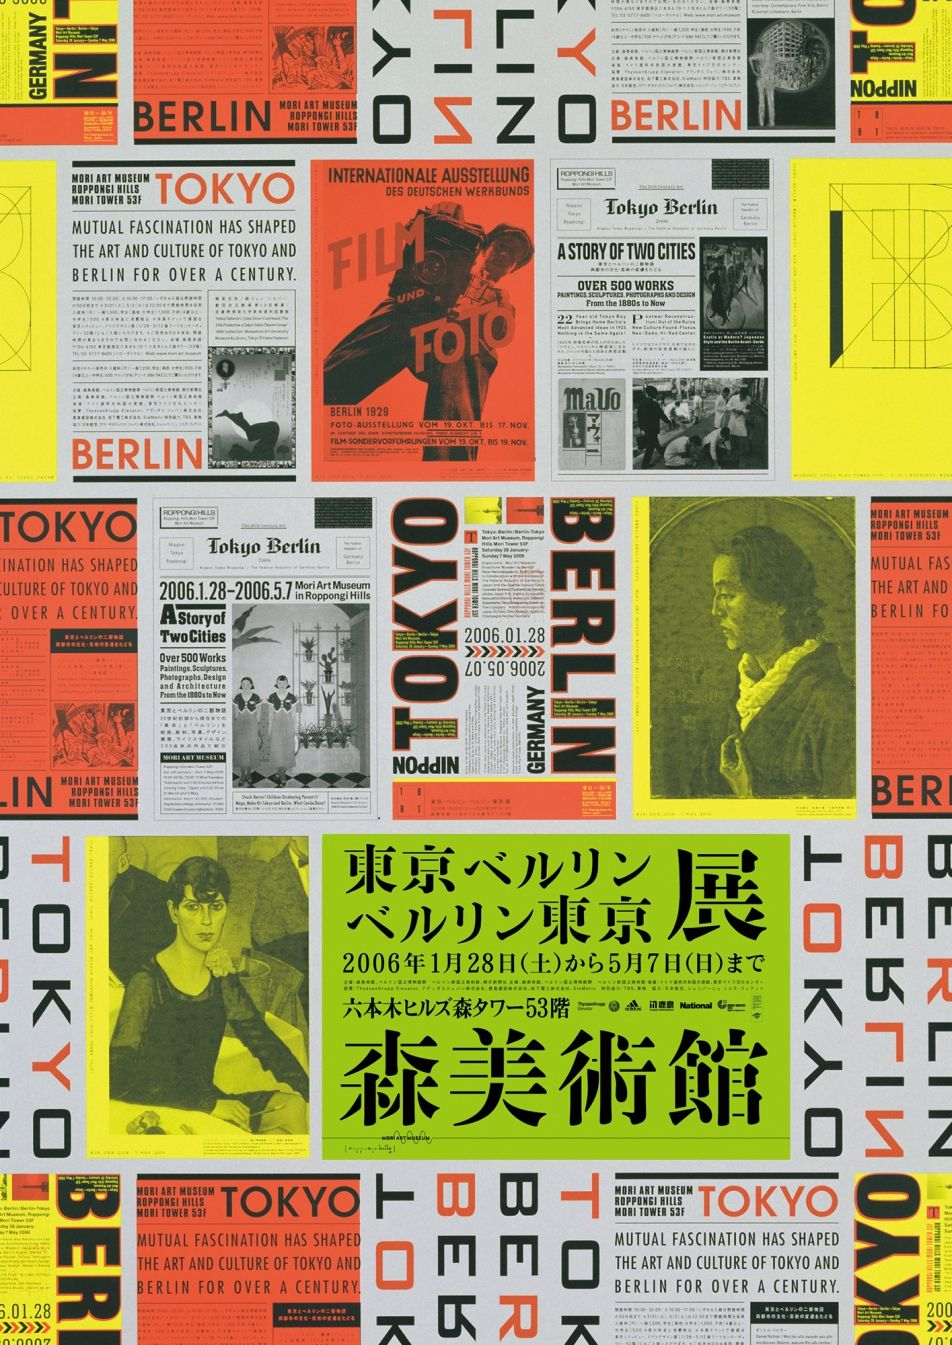 Poster design company - The Gurafiku Archive Of Japanese Graphic Design Is A Collection Of Visual Research Surveying The History Of Graphic Design In Japan